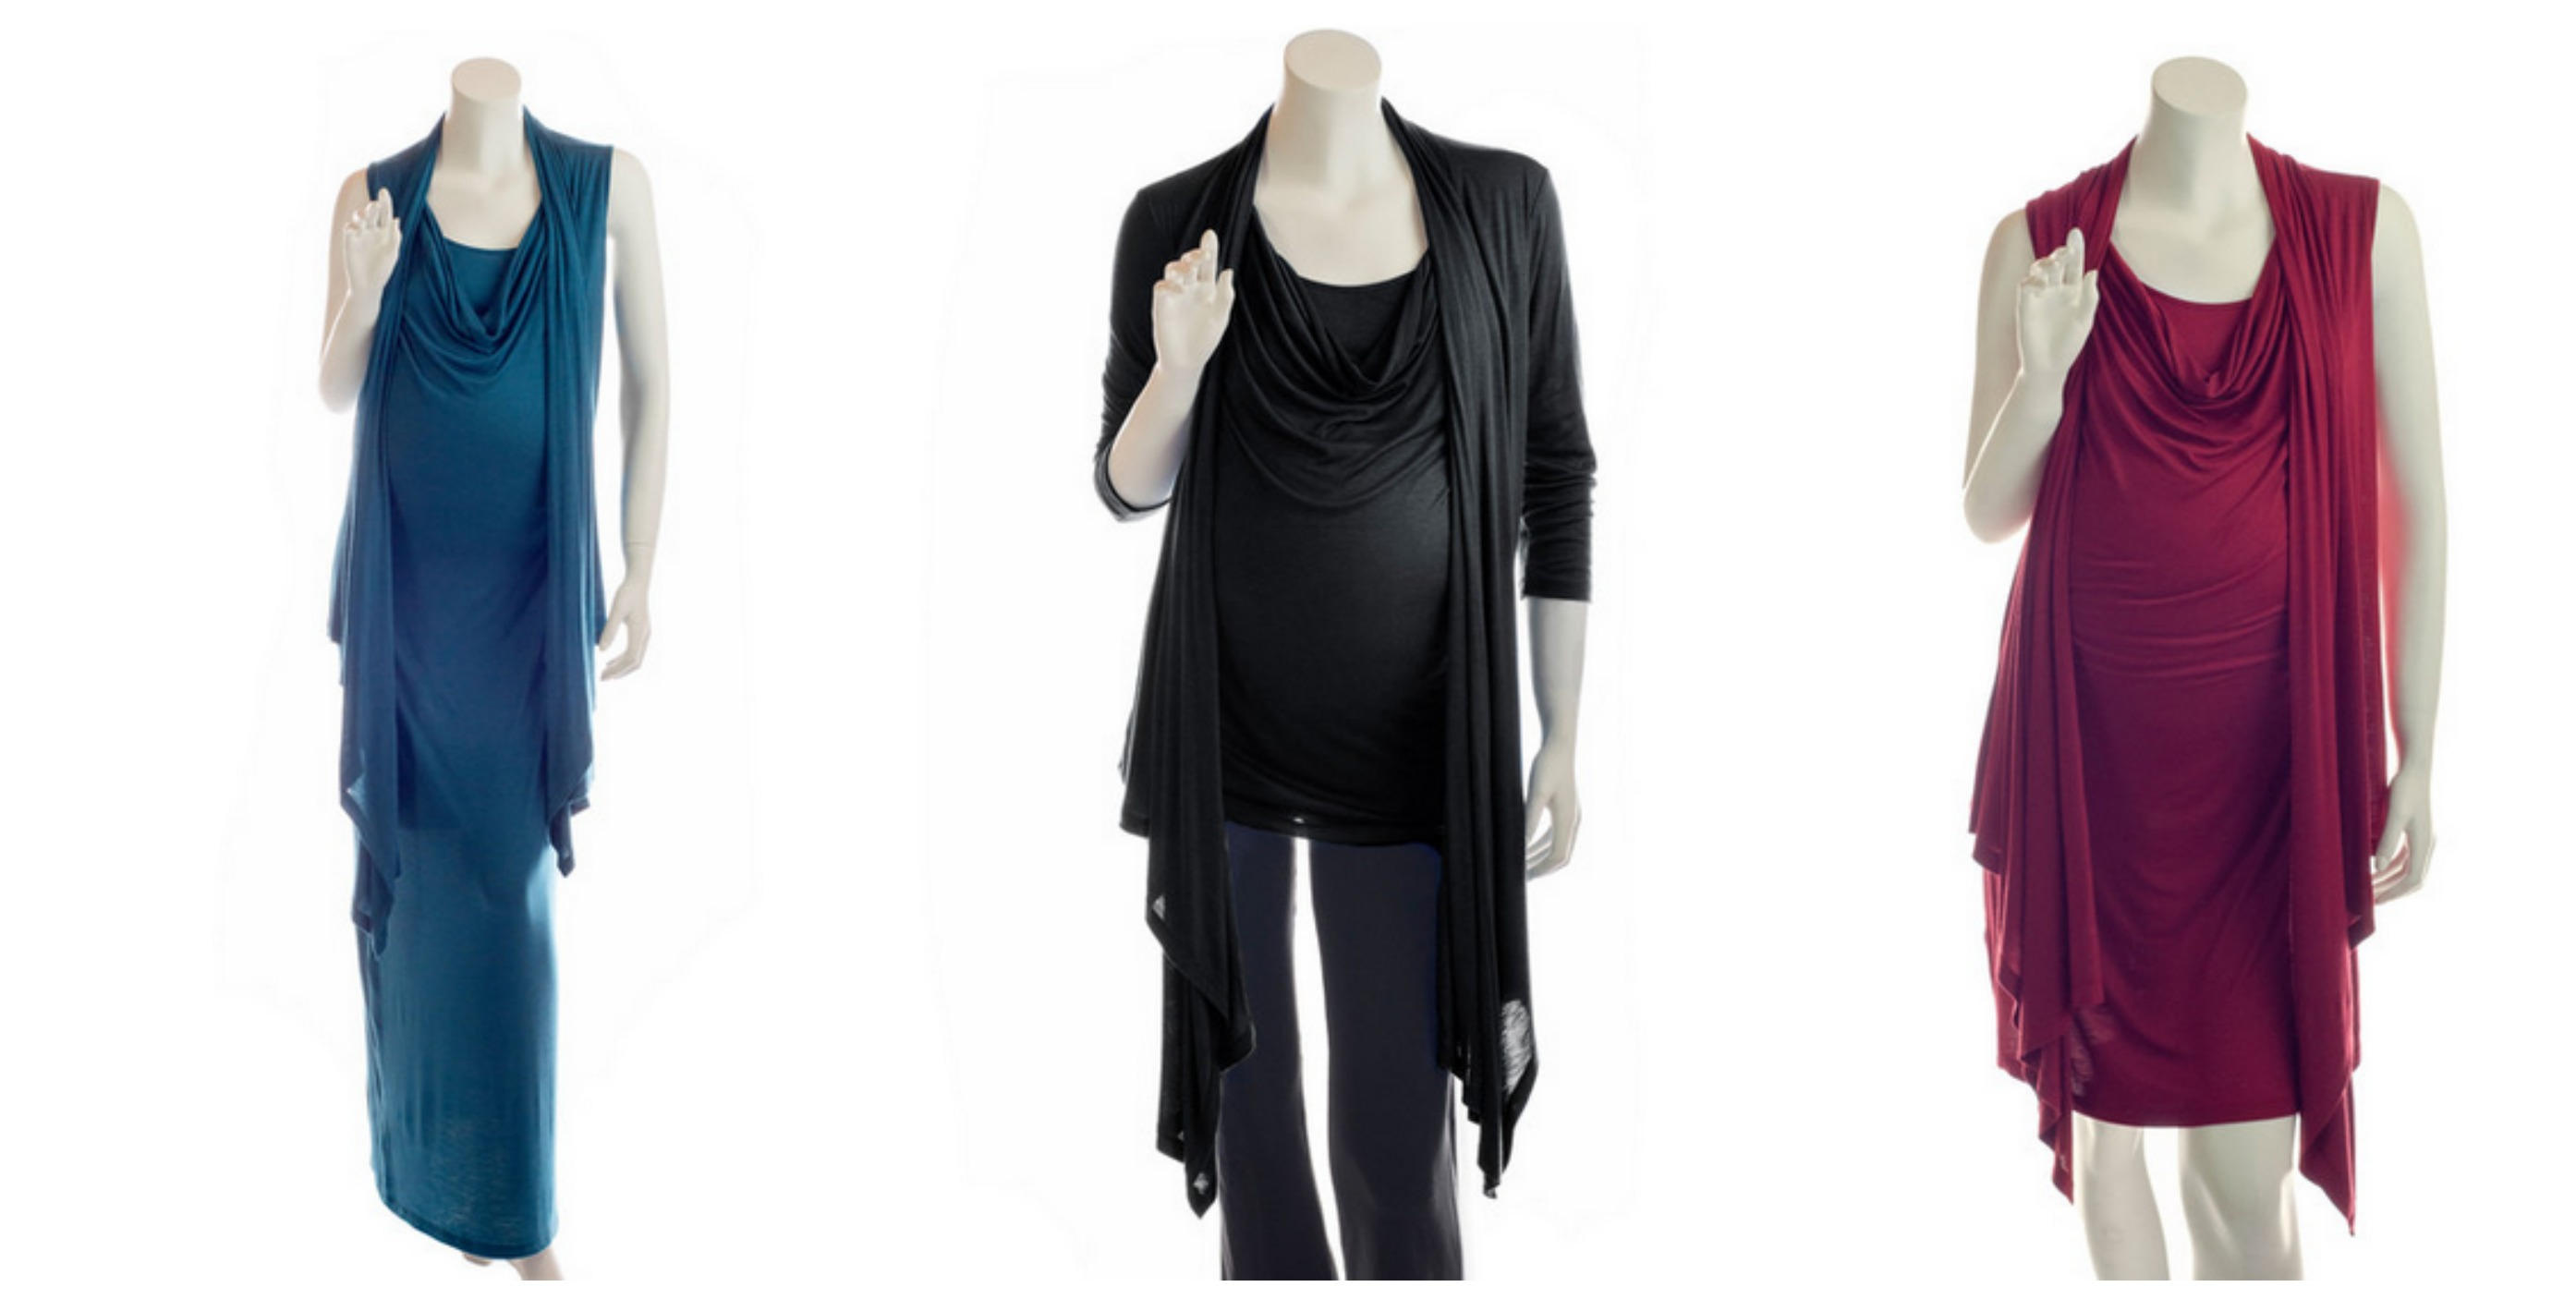 tunics for breastfeeding